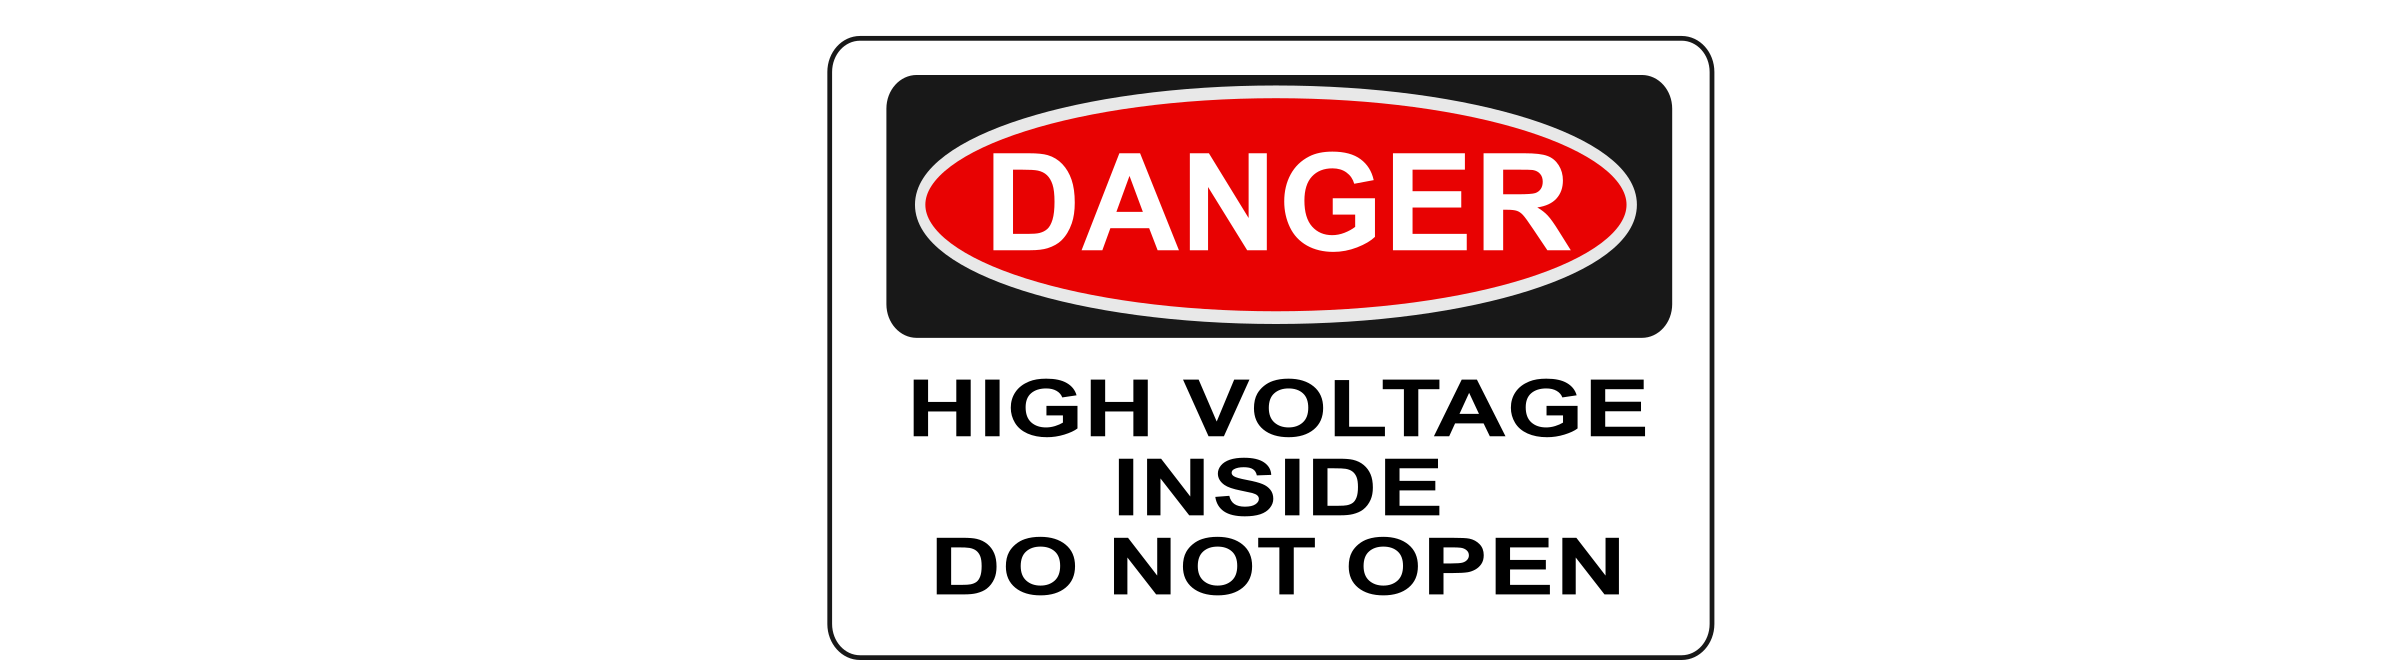 Danger - High Voltage Inside Do Not Open by Rfc1394